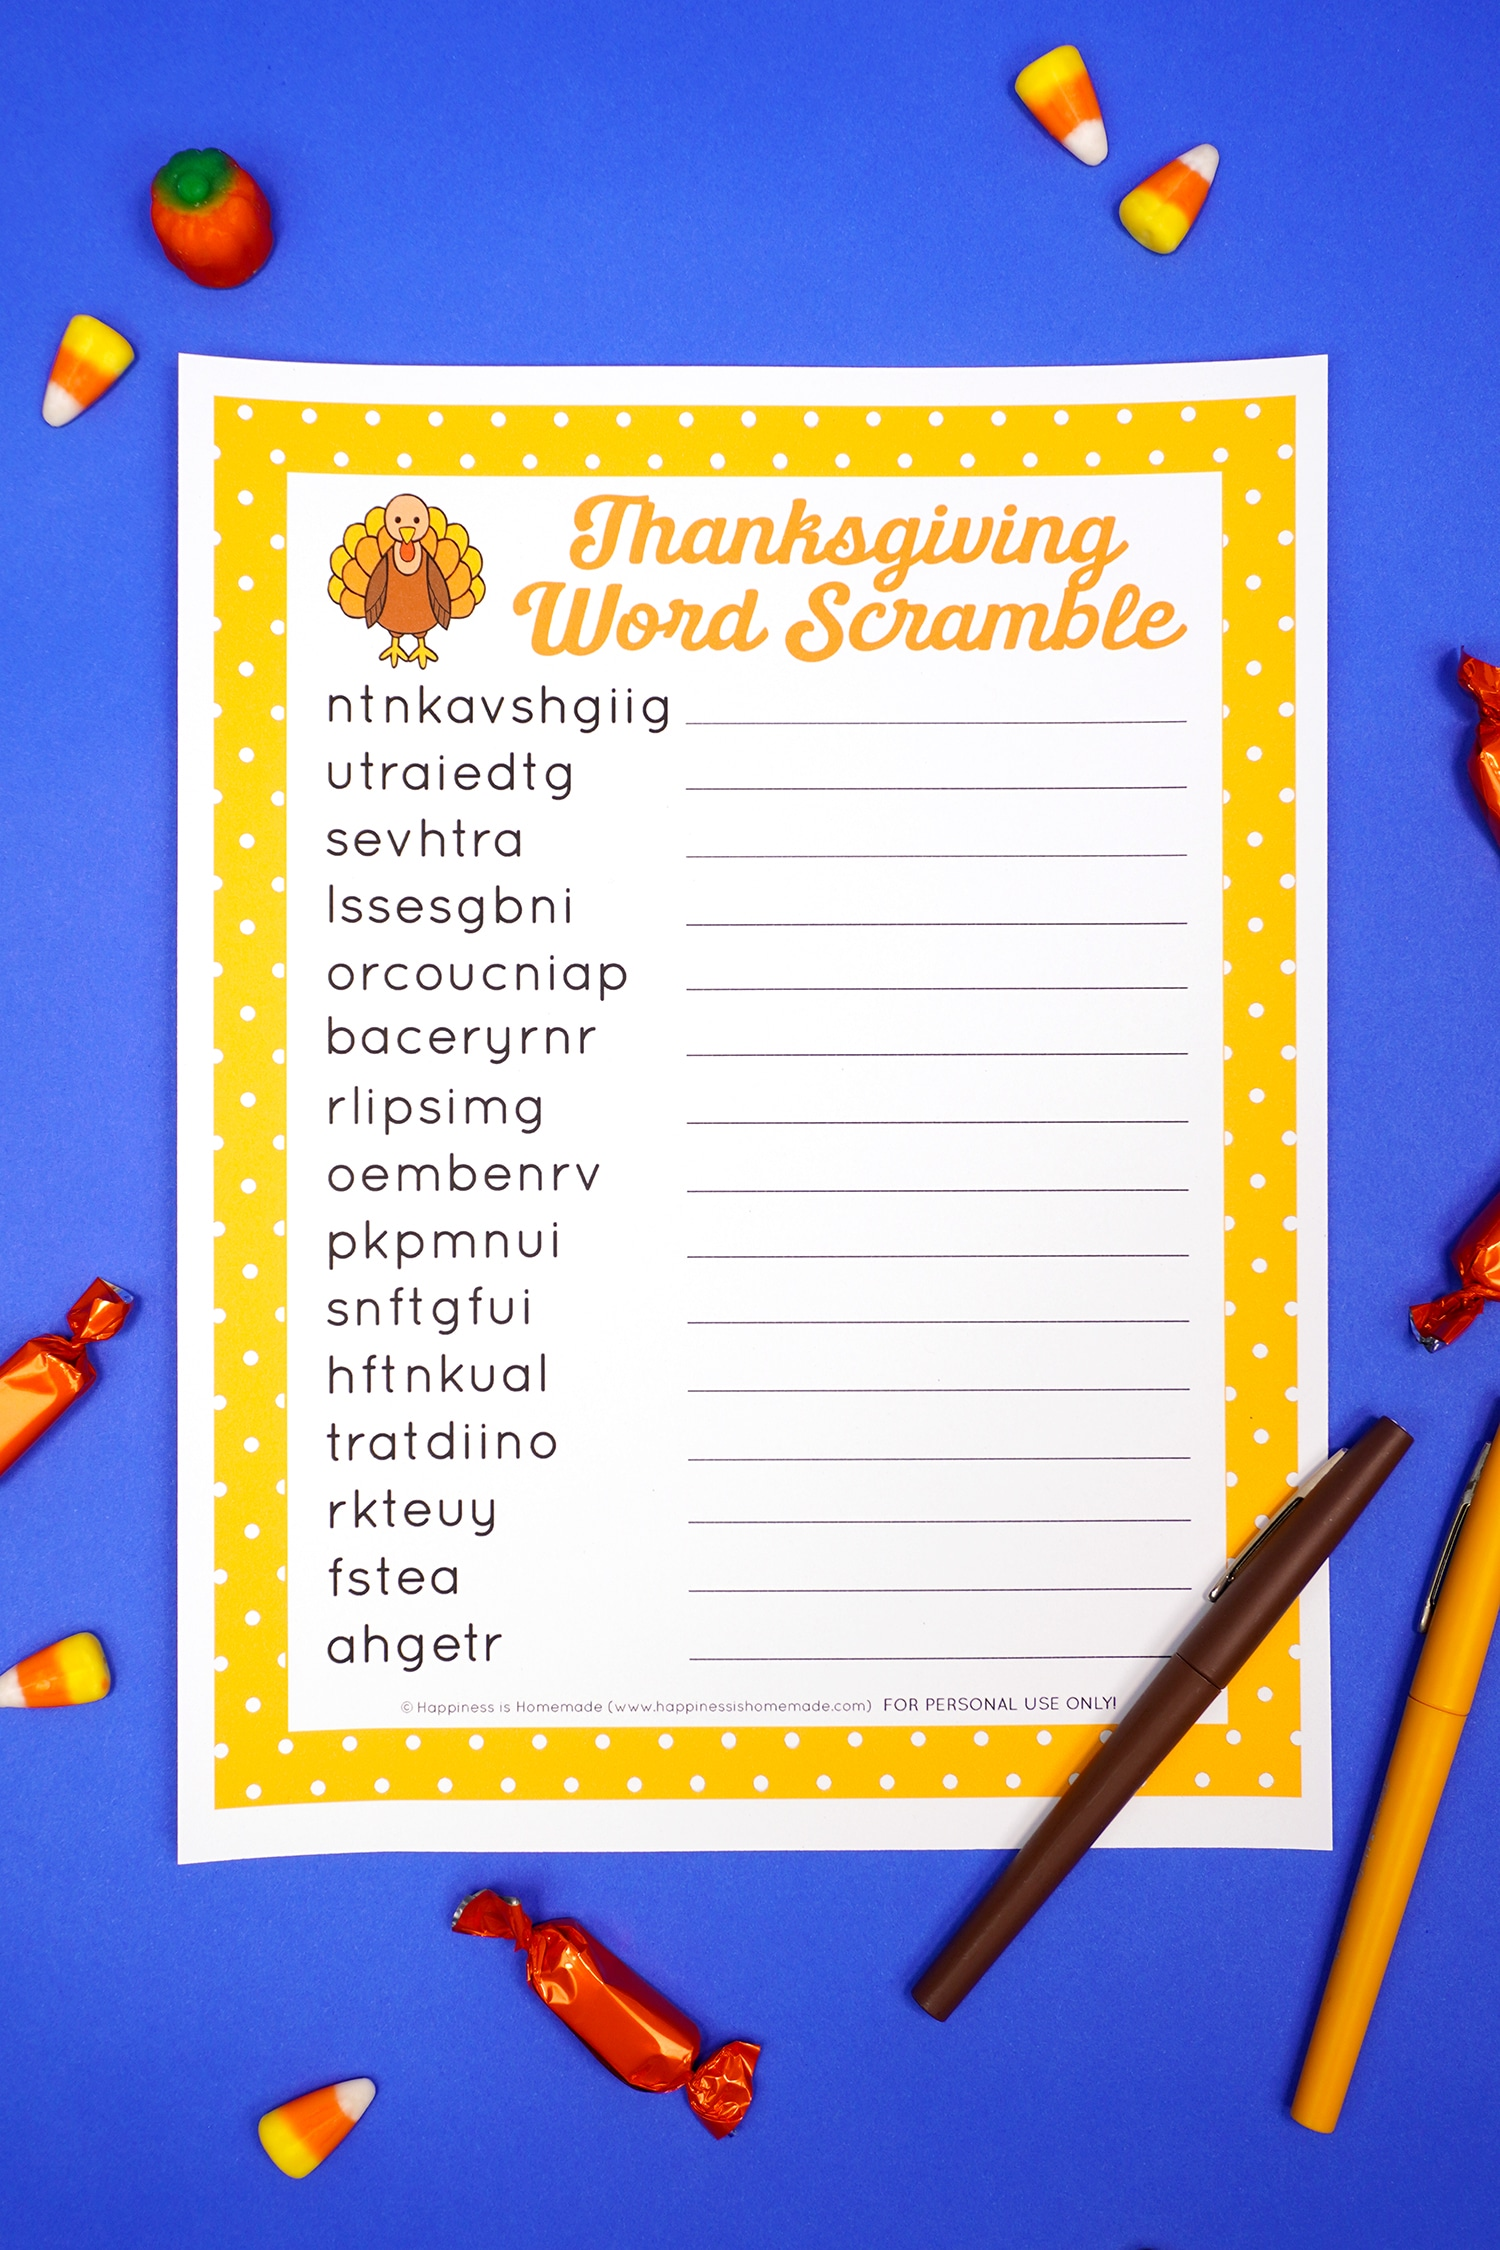 Printable Thanksgiving Word Scramble on a blue background surrounded by candy and a yellow and brown pen.